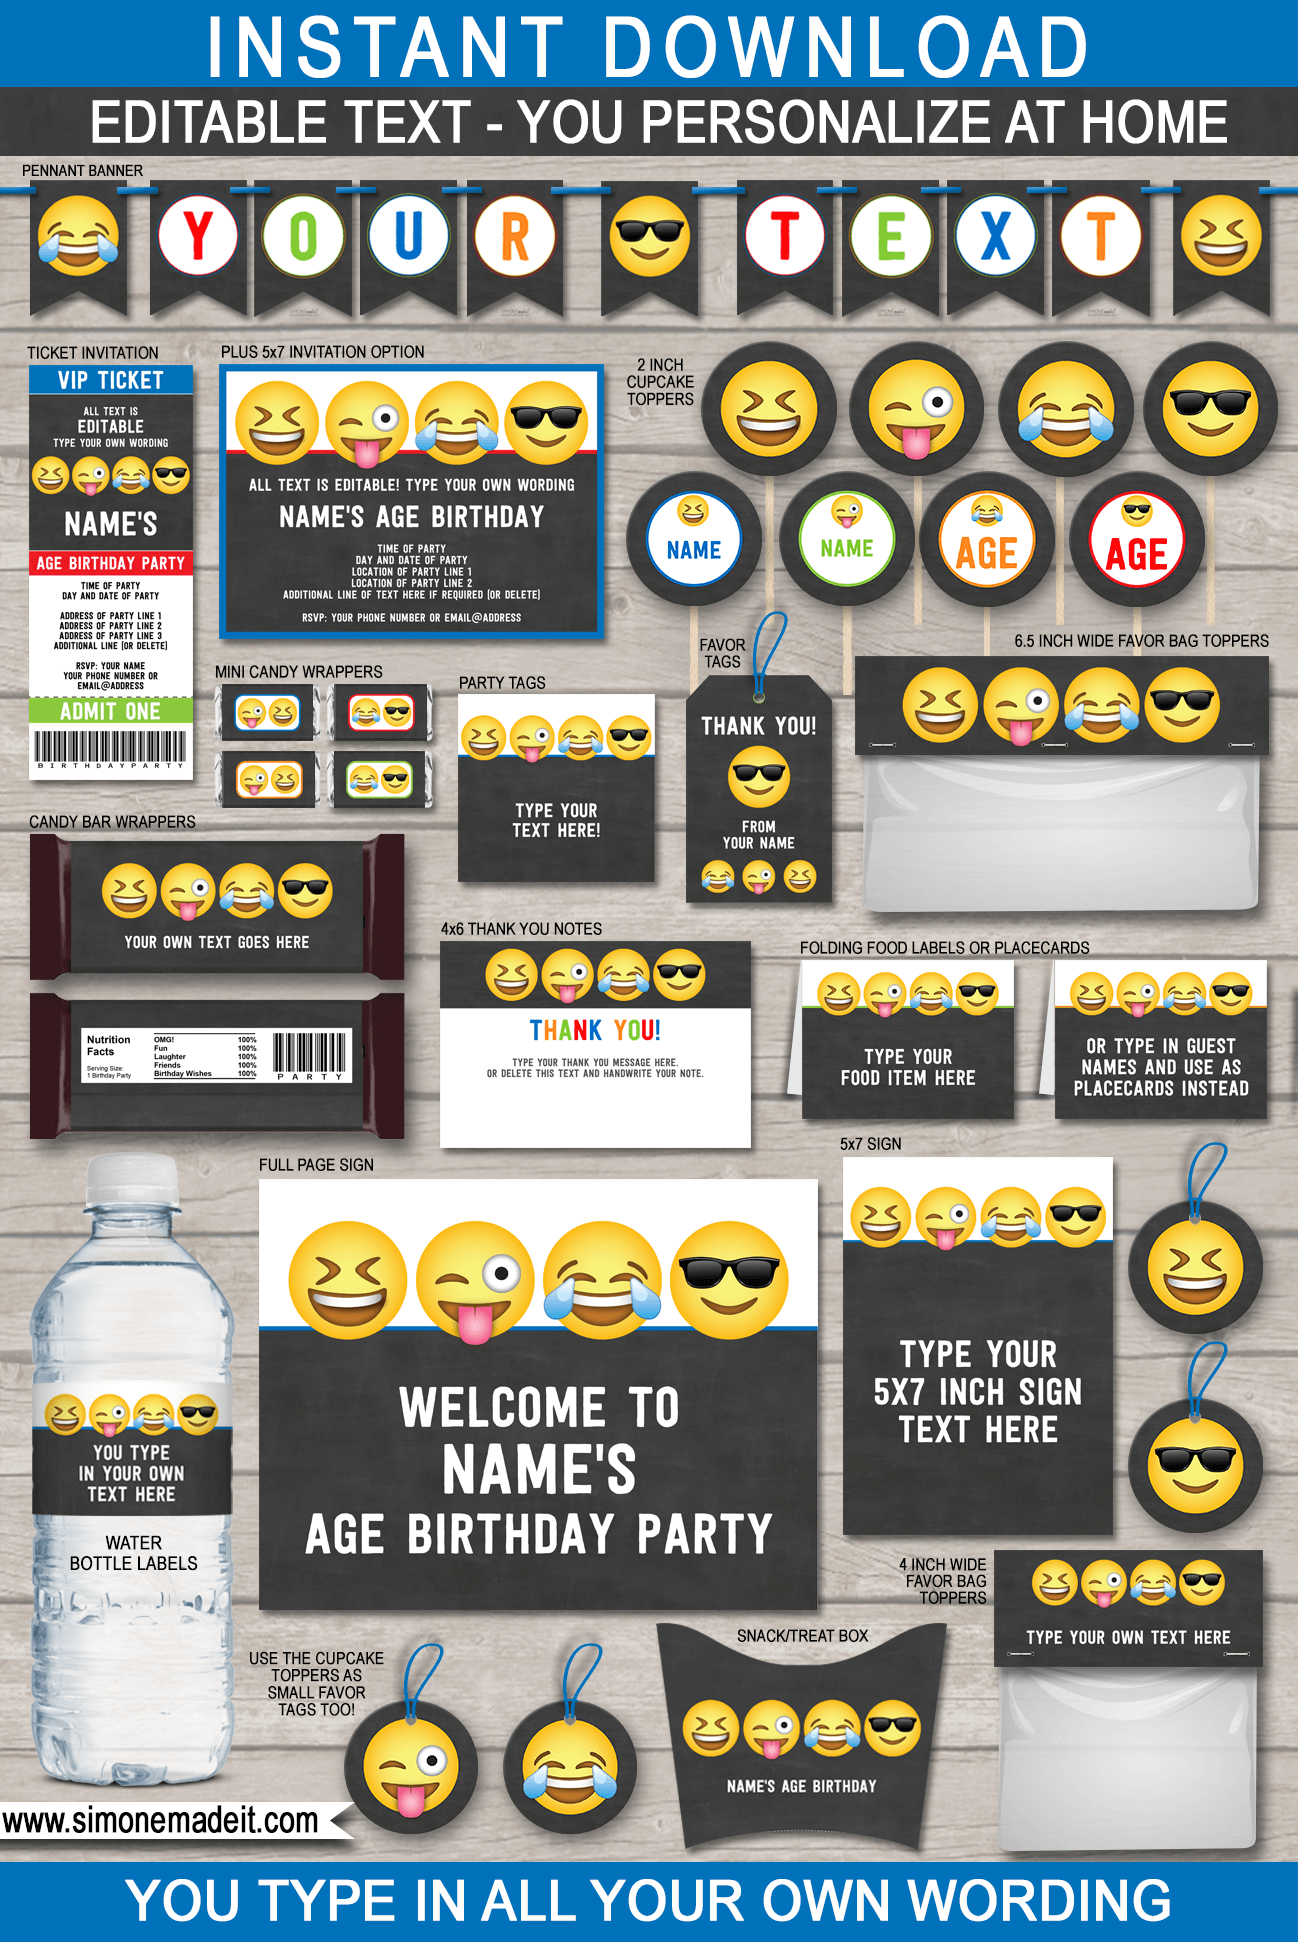 Emoji Theme Party Printables, Invitations & Decorations for Boys | Emoji Theme Birthday Party | DIY Editable Templates | INSTANT DOWNLOAD via simonemadeit.com